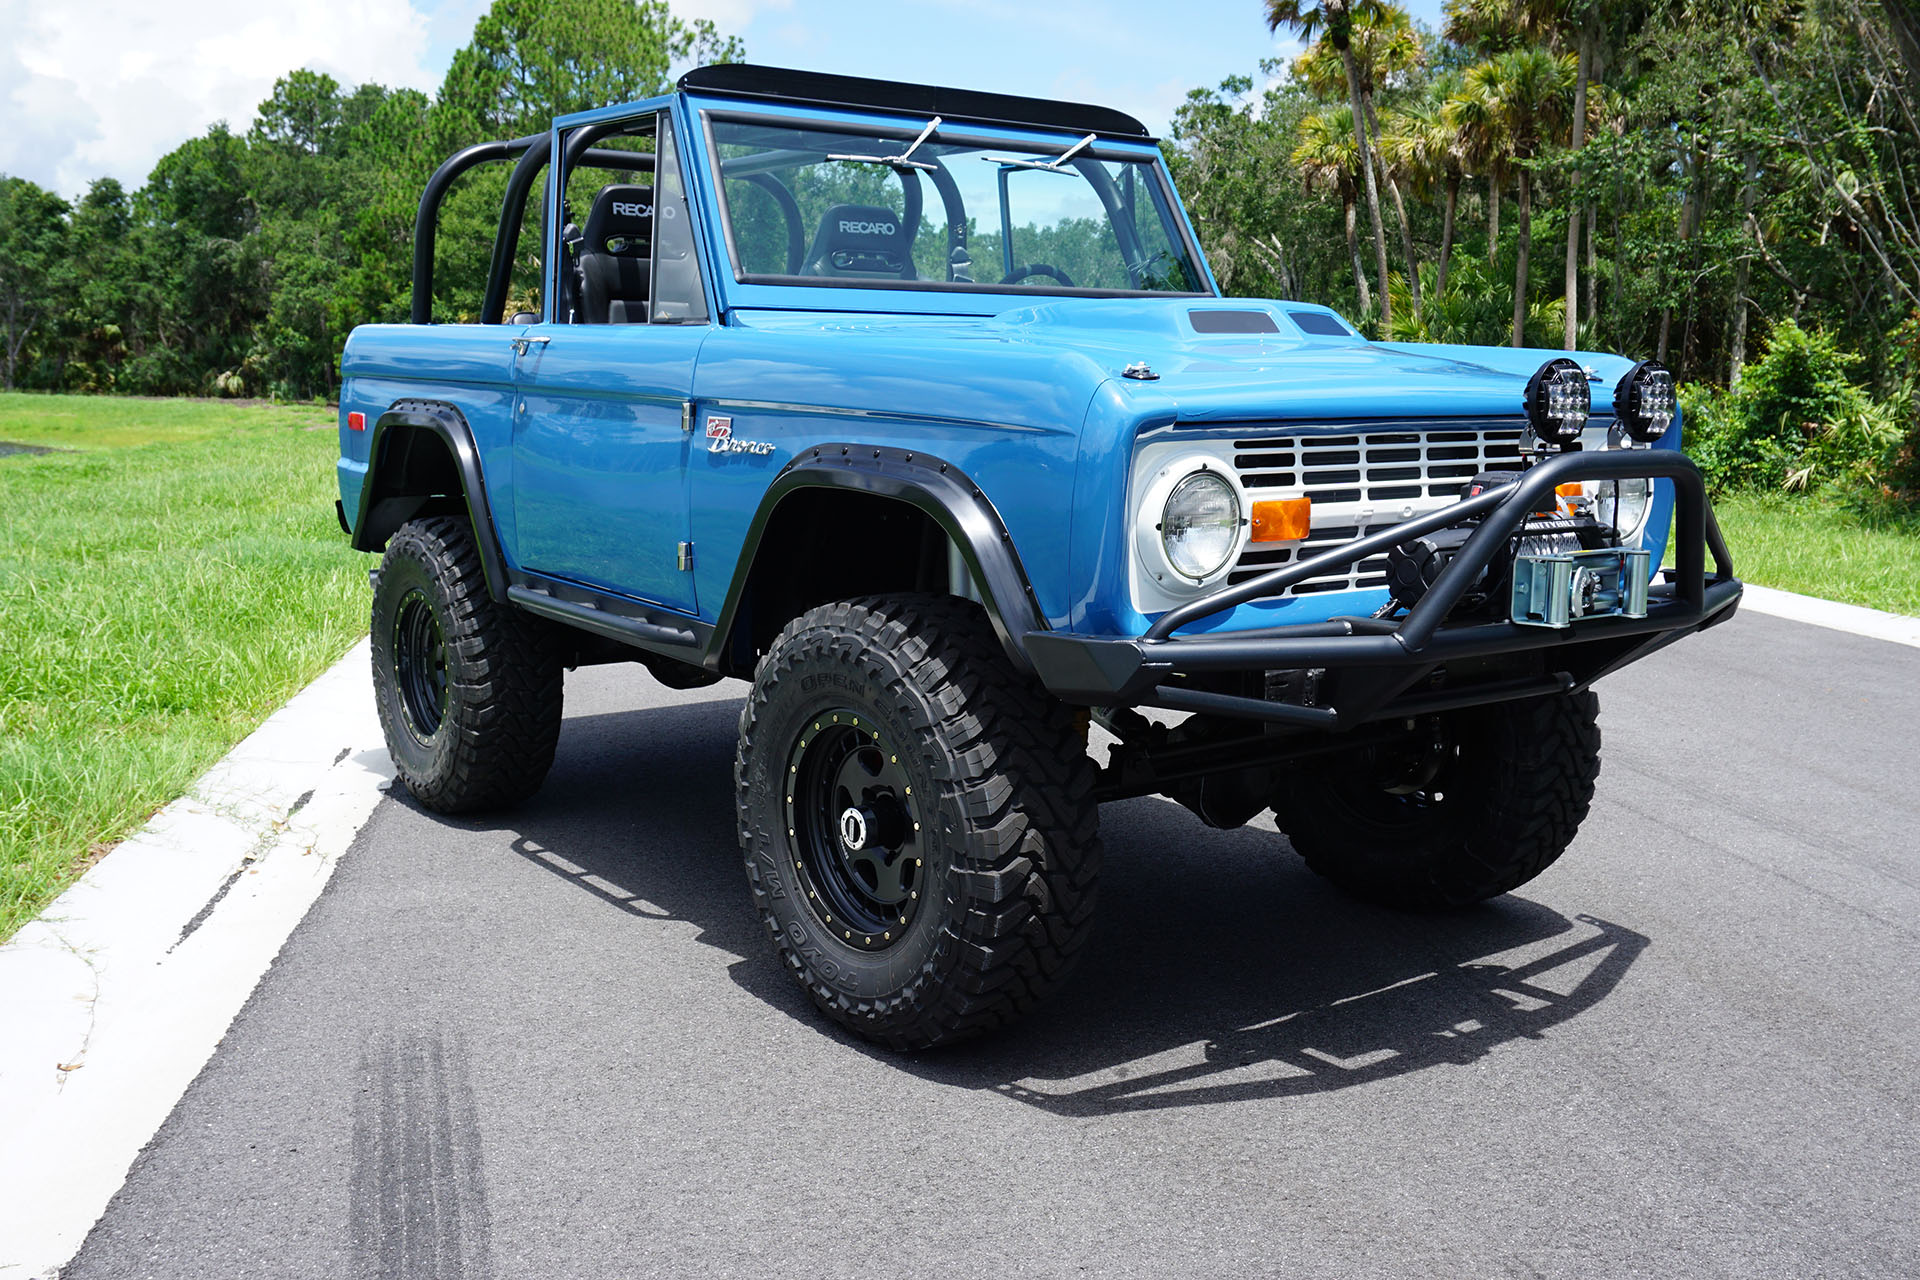 1972 bronco icon with a coyote v8 engine swap depot rh engineswapdepot com 81 Bronco 73 Bronco